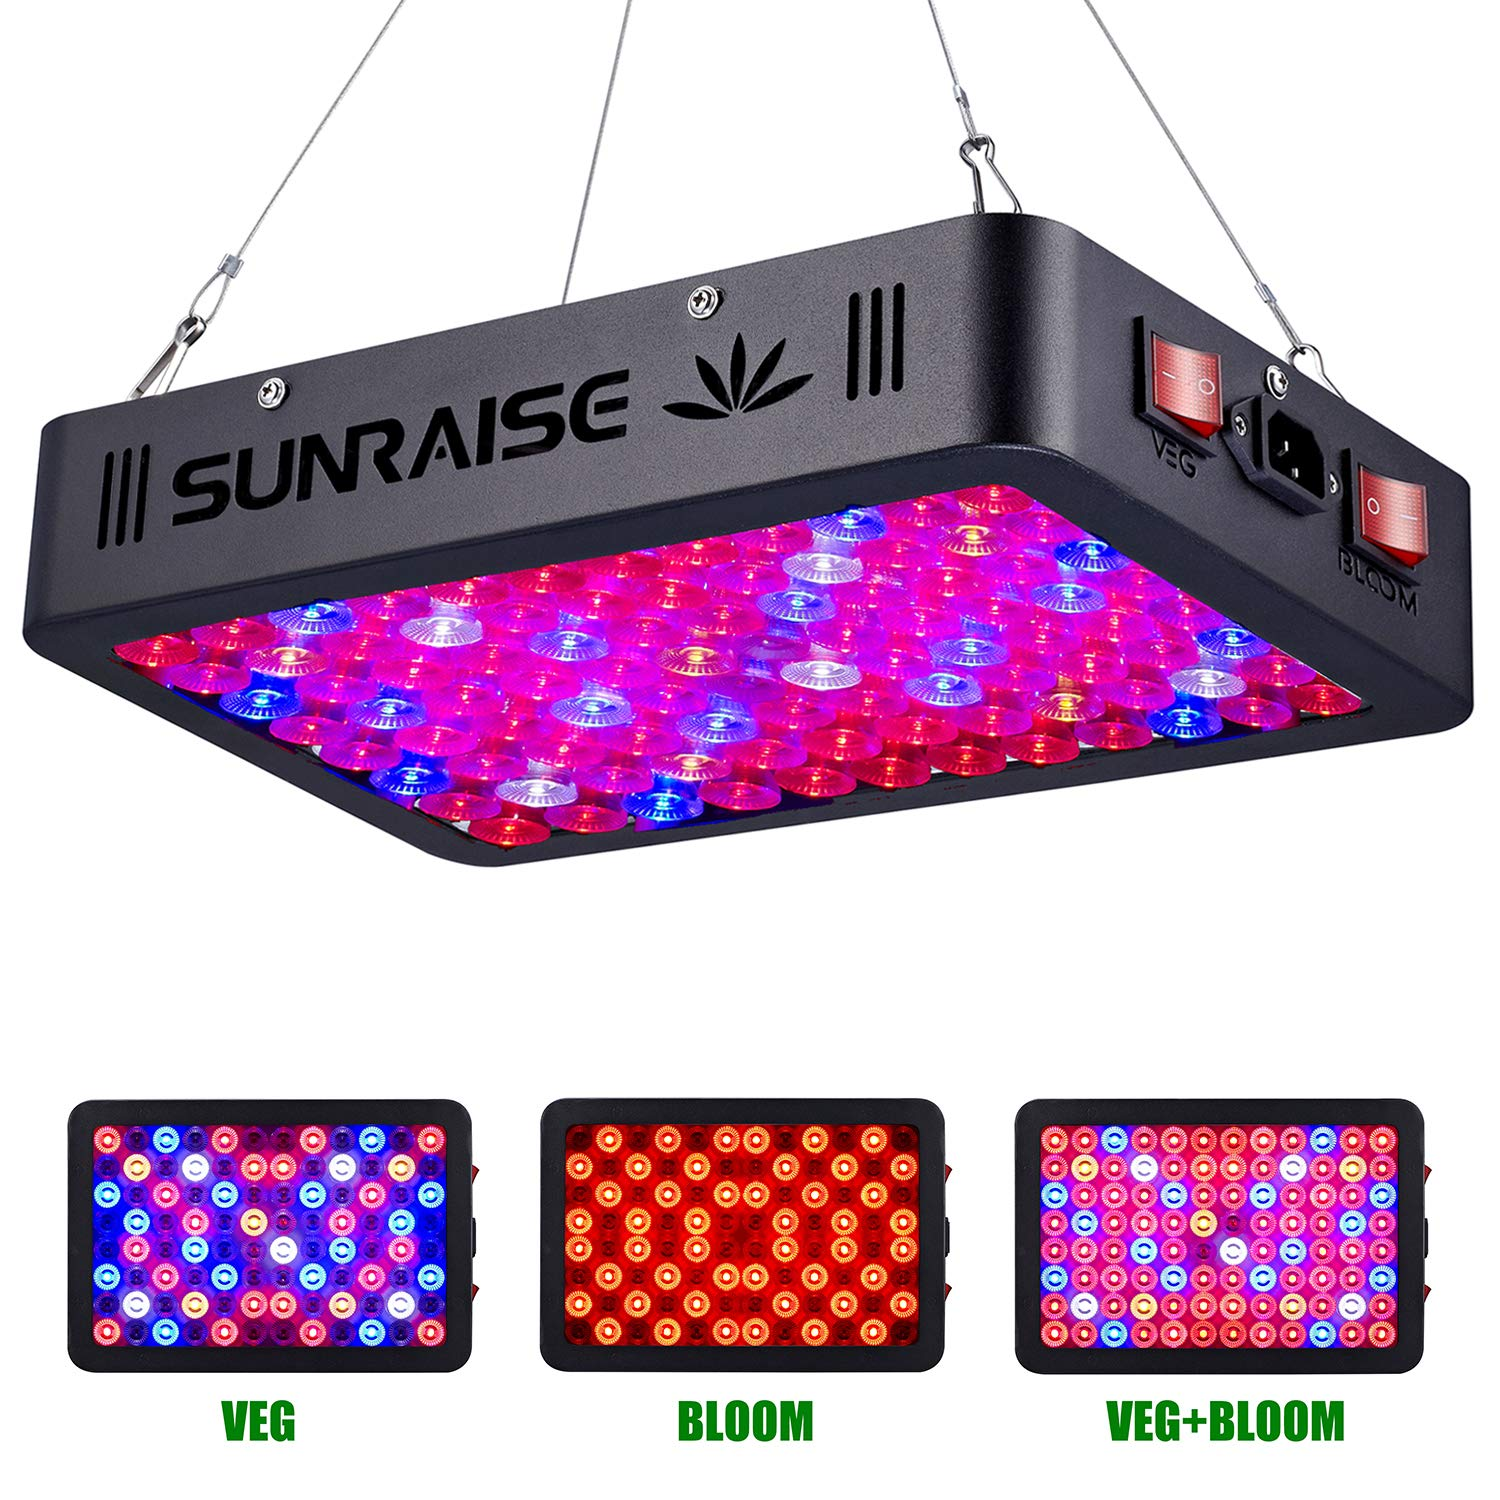 1000W LED Grow Light Full Spectrum for Indoor Plants Veg and Flower SUNRAISE LED Grow Lamp with Daisy Chain Triple-Chips LED (15W LED) by SUNRAISE